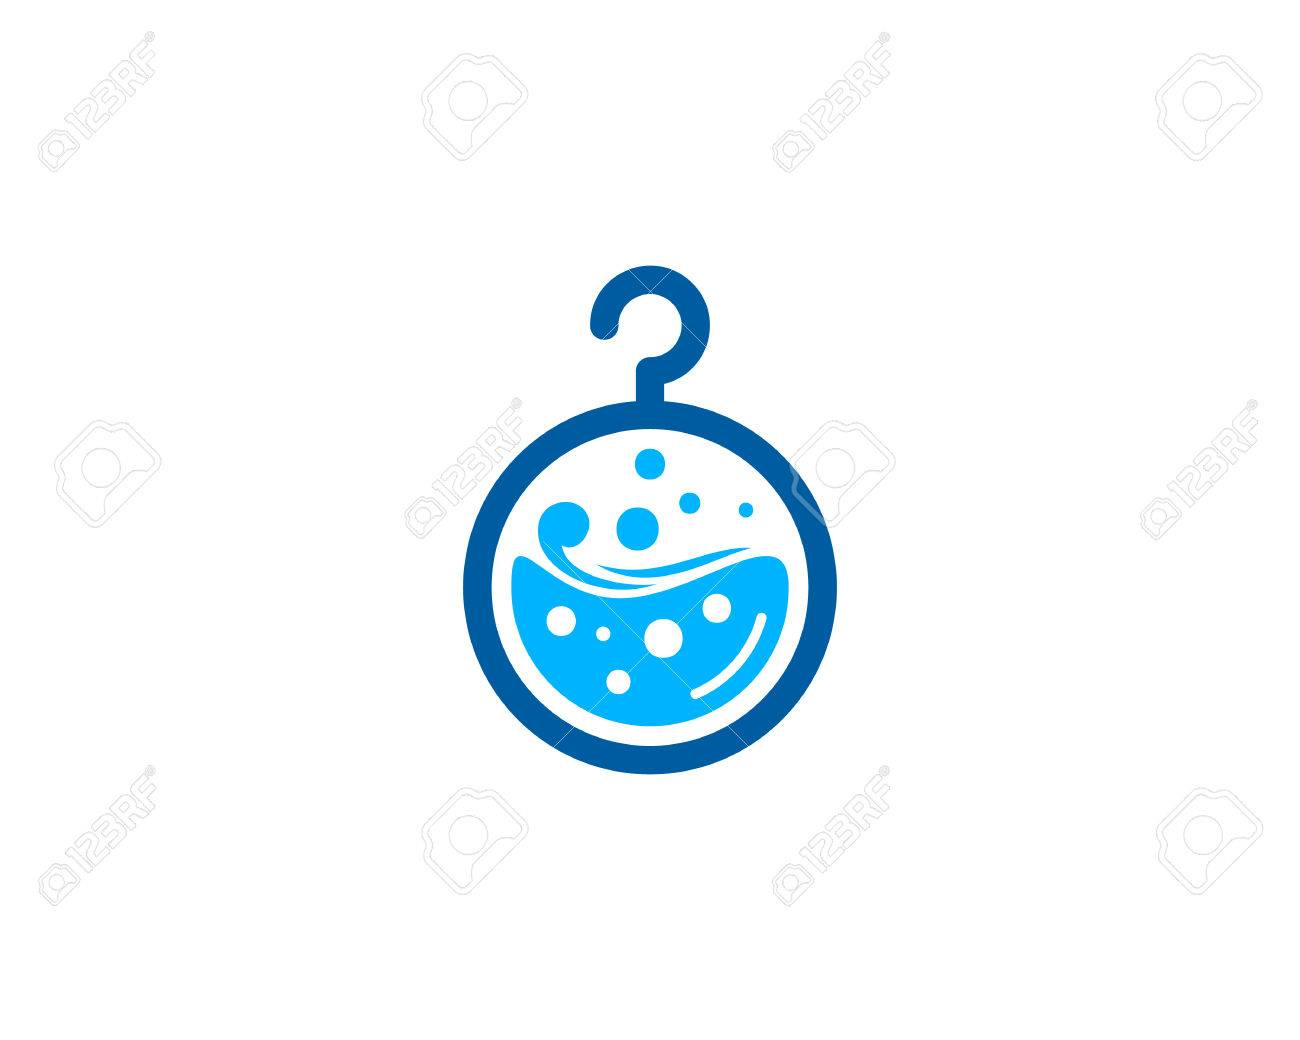 laundry icon logo design element royalty free cliparts vectors and stock illustration image 80611928 laundry icon logo design element